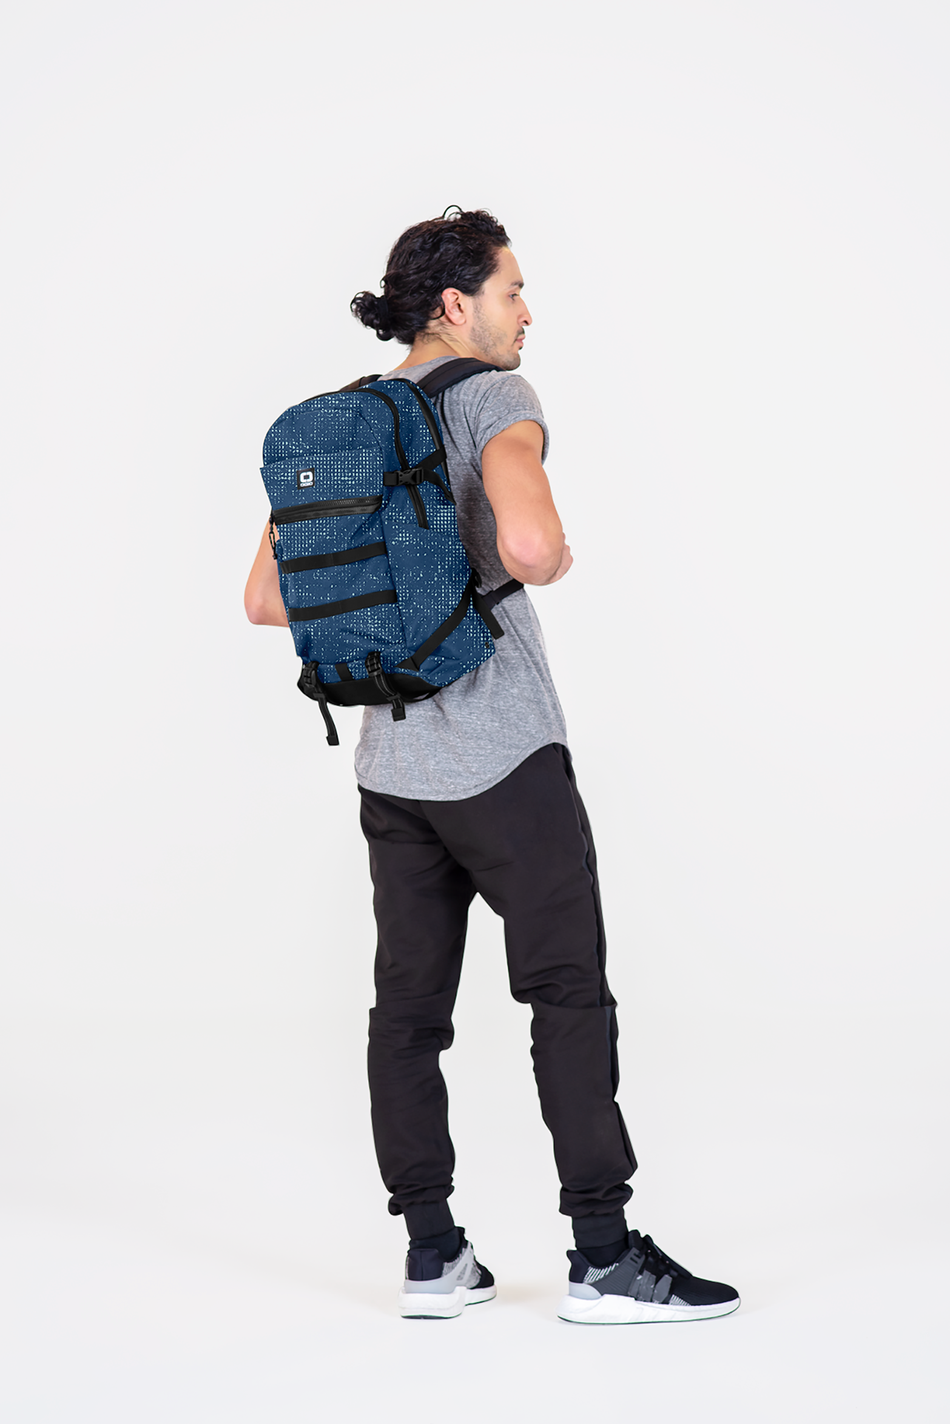 ALPHA Convoy 320 Backpack - View 12